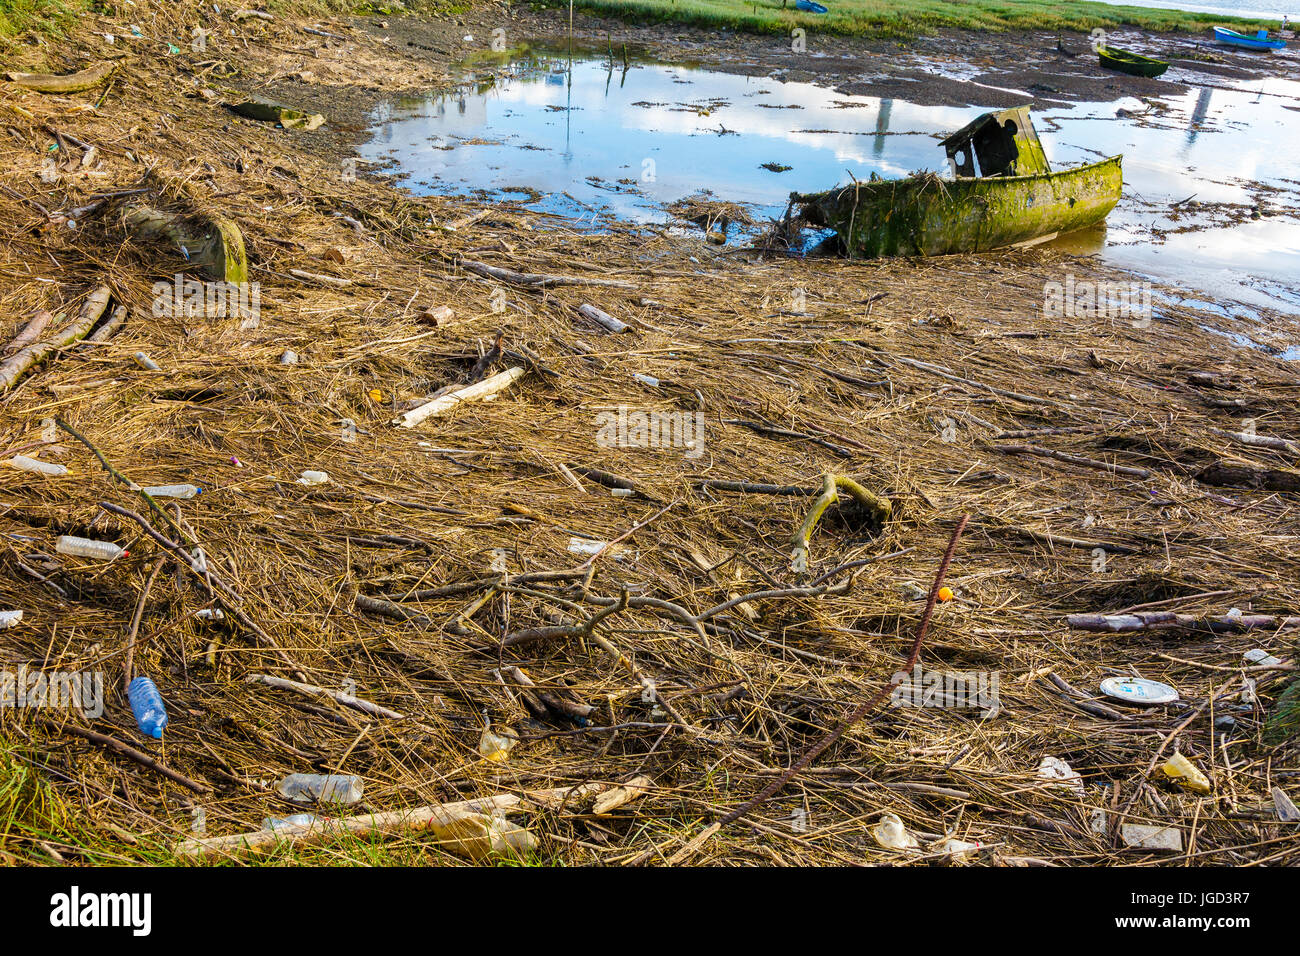 Old boat and tidal waste. - Stock Image